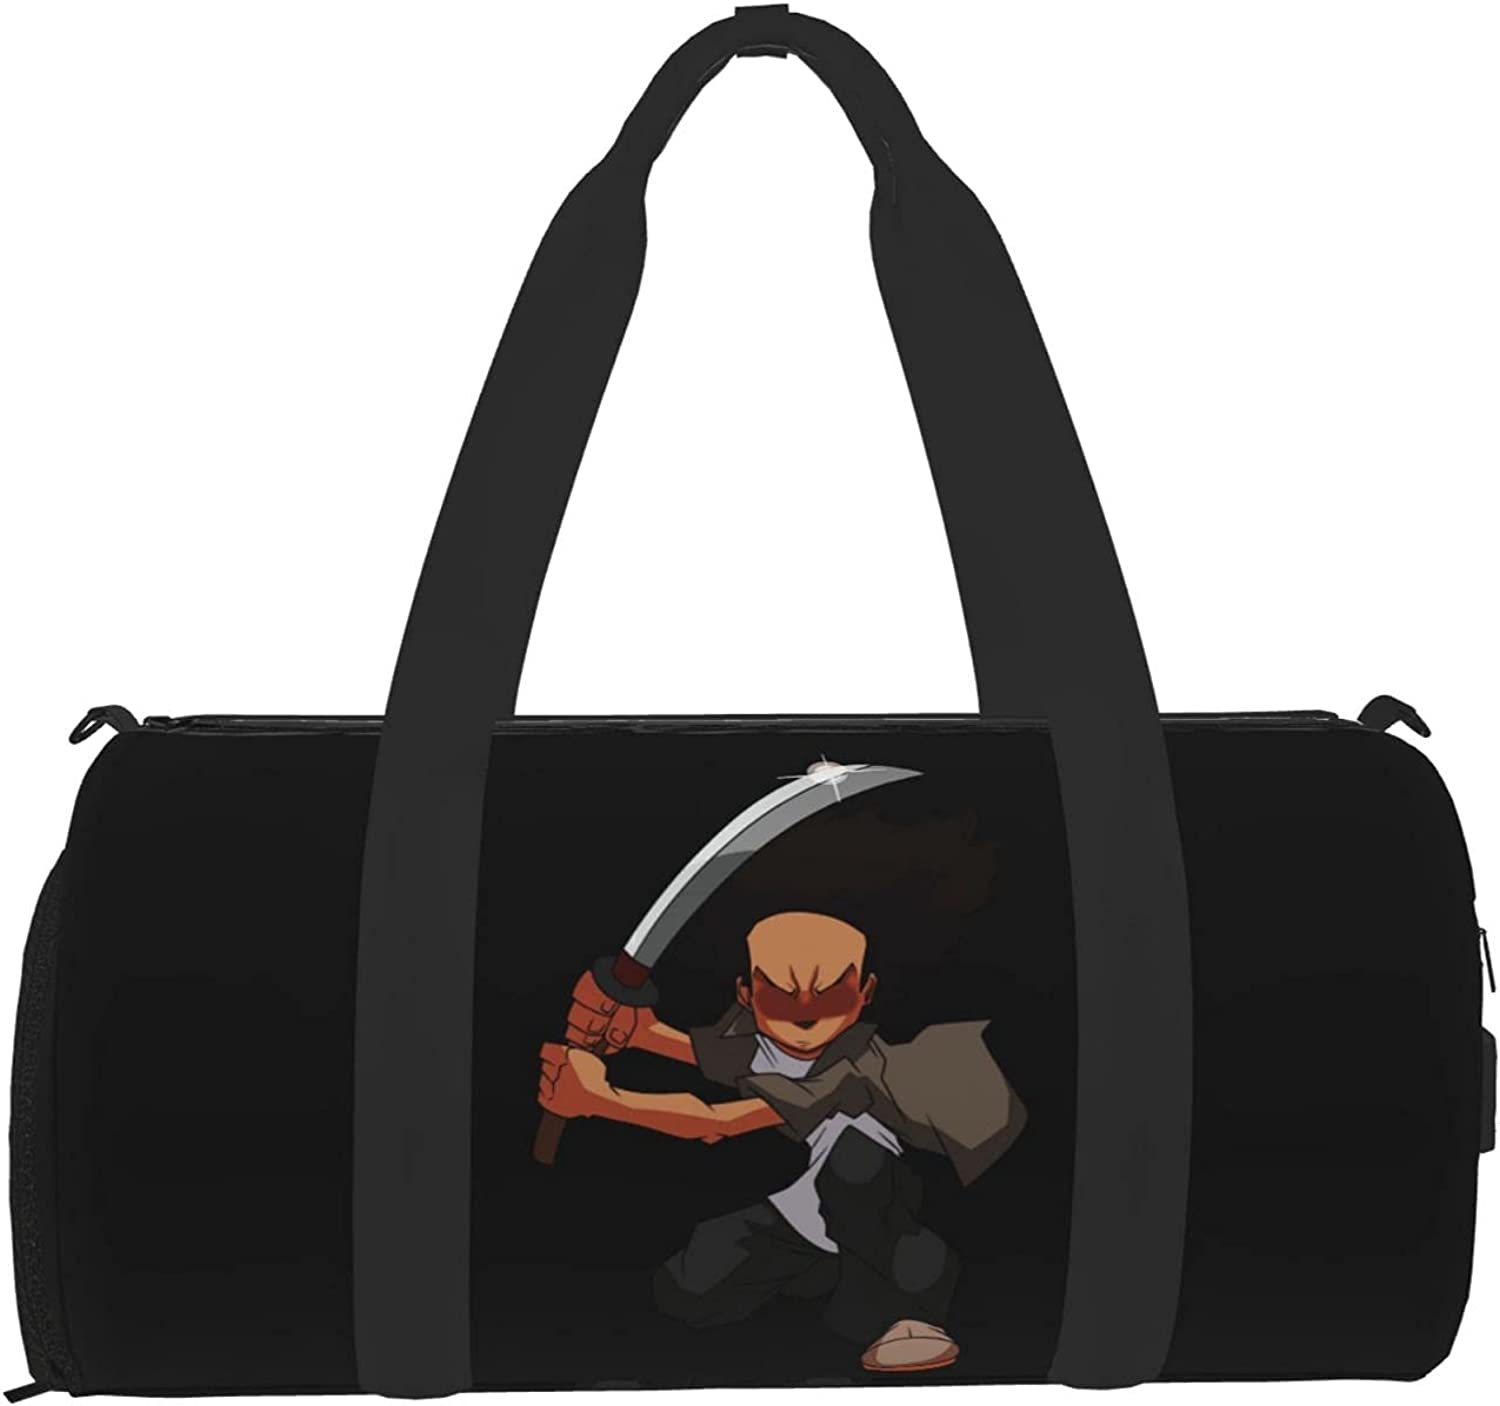 The Boon-Docks Gym Bag Dry Max 64% OFF Sports Wet High order Single Separation And